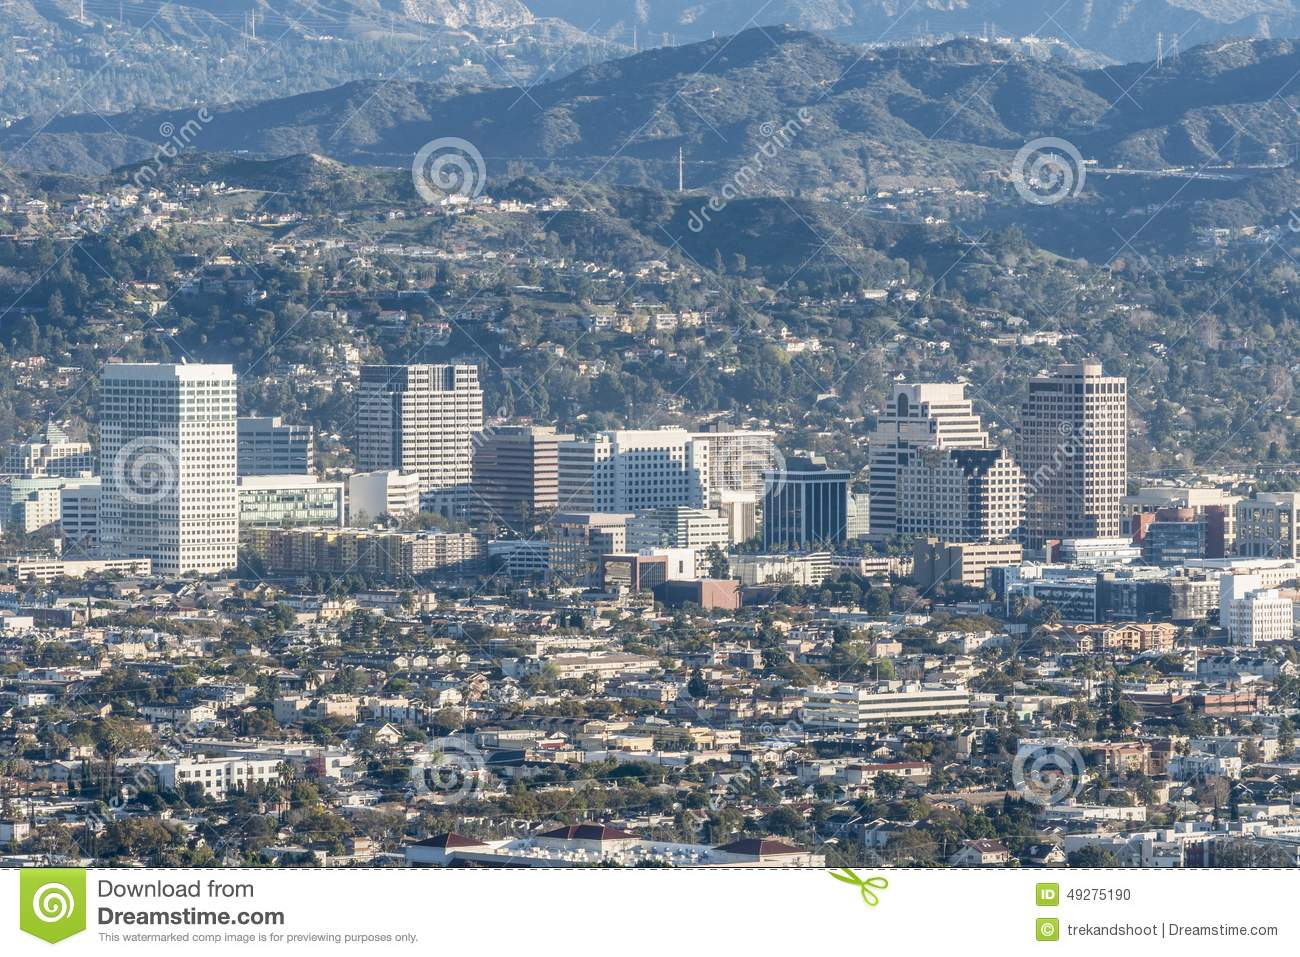 Glendale california stock photo image 49275190 for The glendale